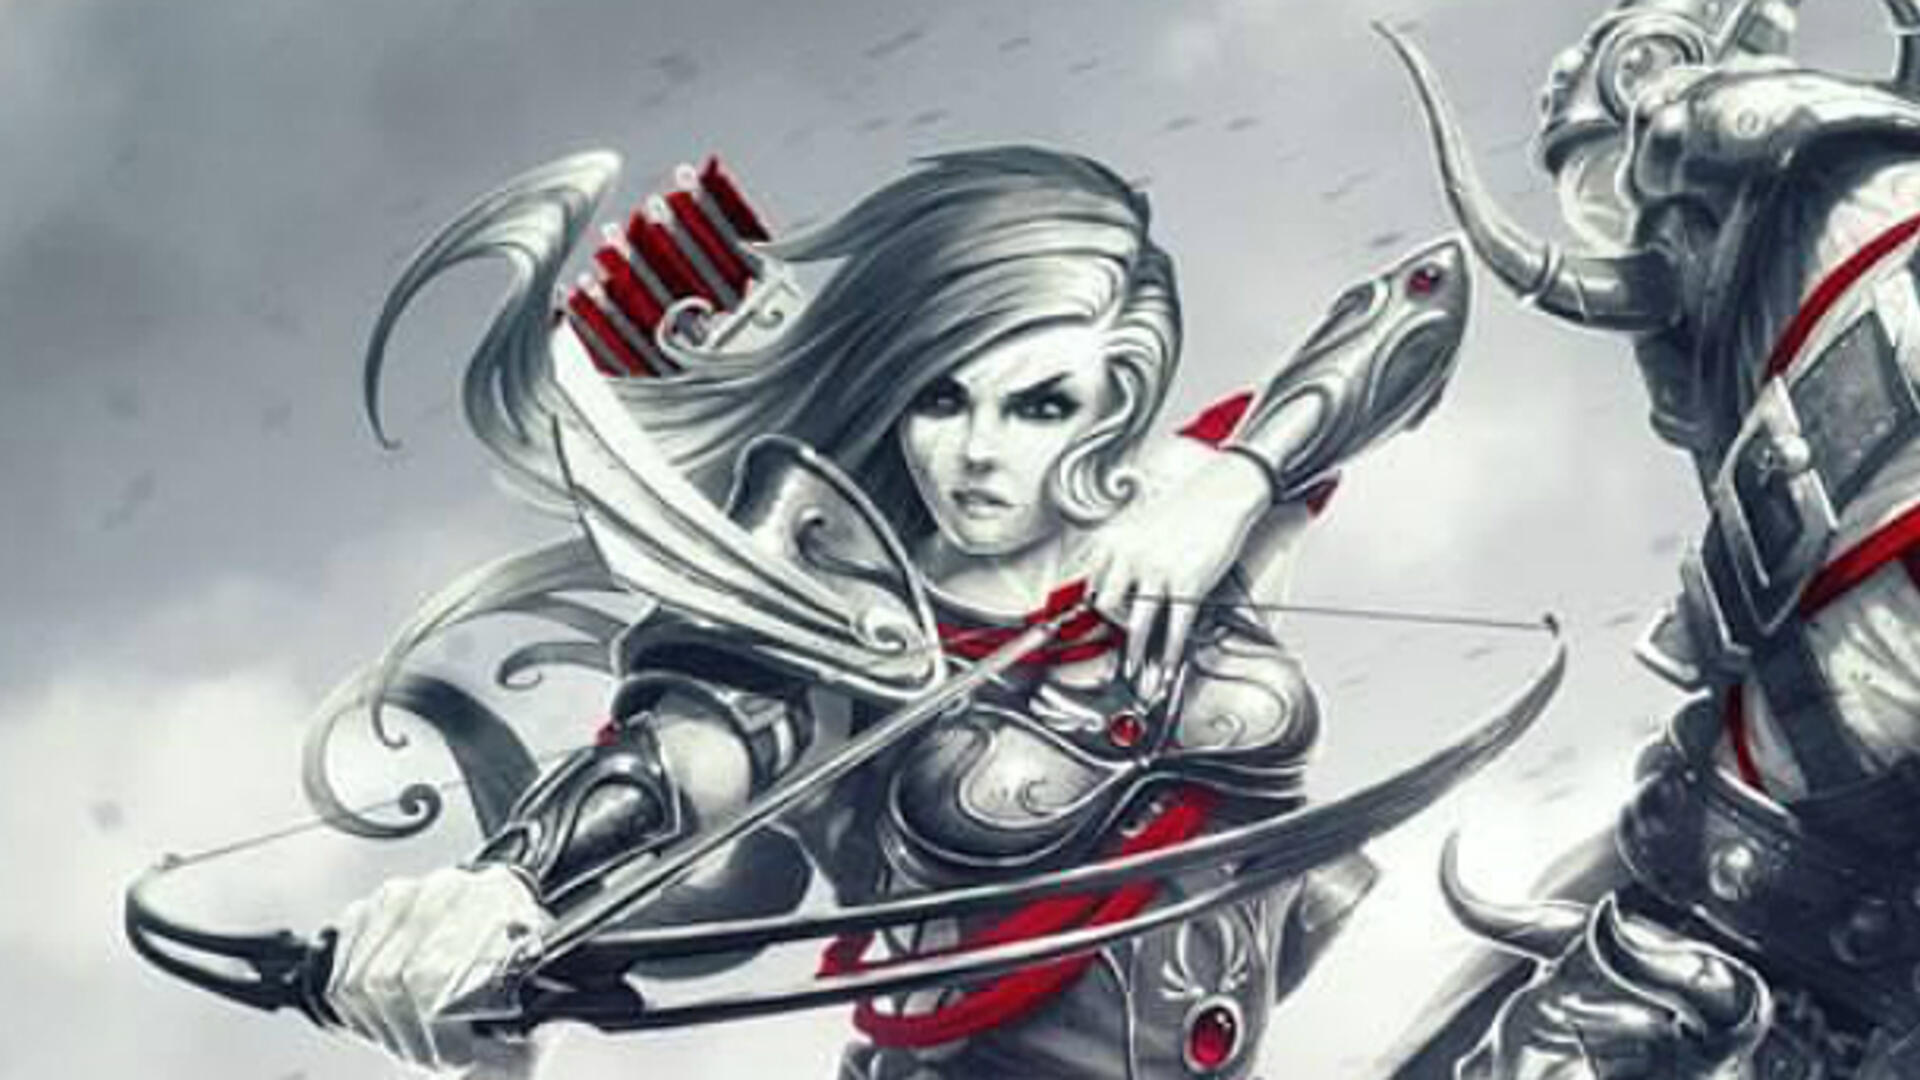 The Top 25 RPGs of All Time #20: Divinity Original Sin